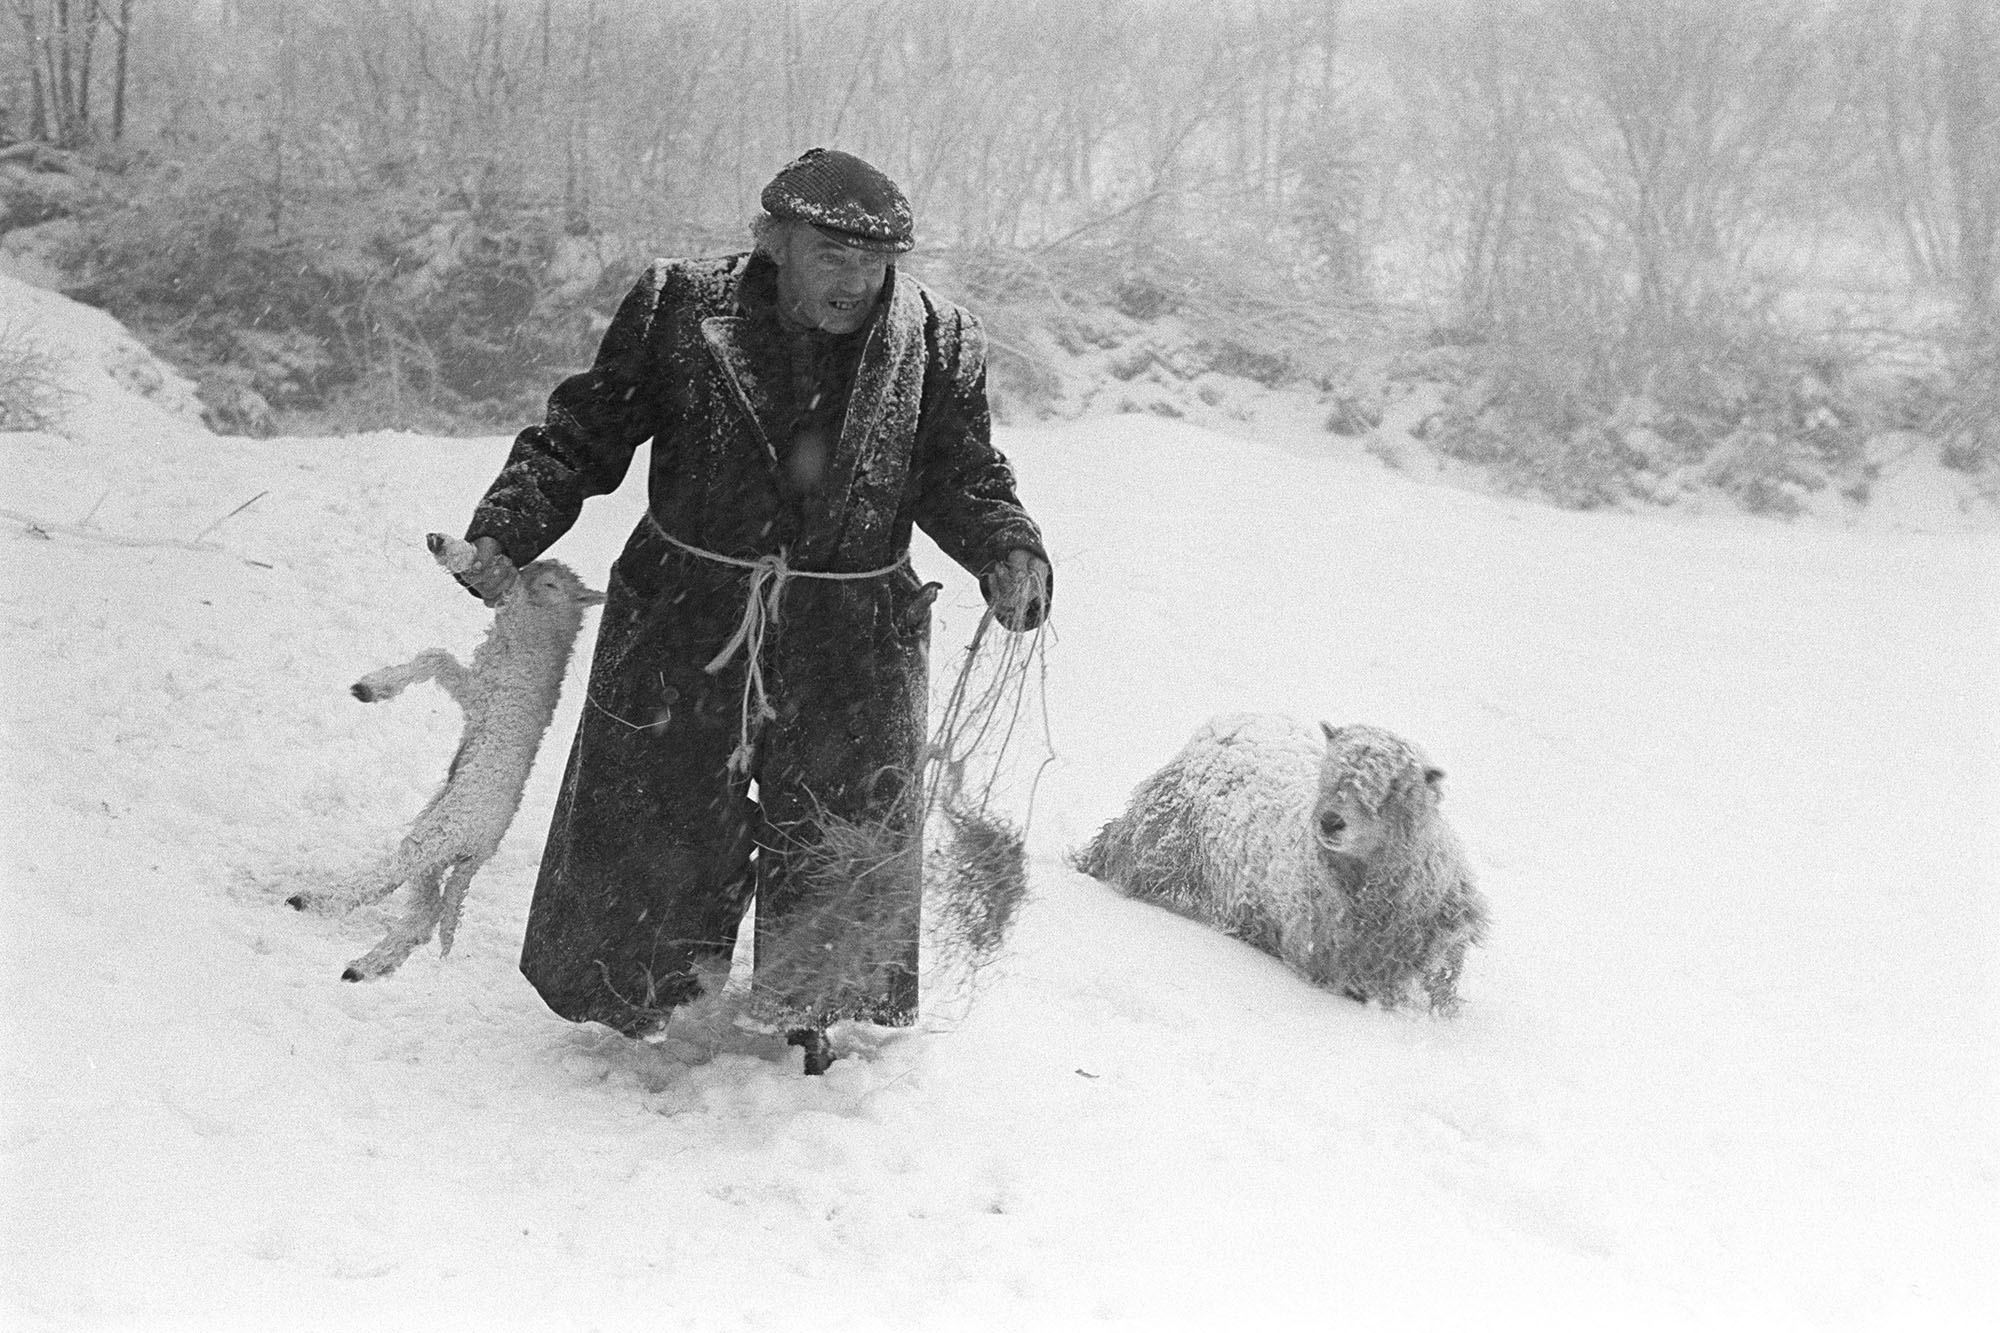 Ivor Brock rescuing a lamb in a blizzard, Millhams, Dolton, 1978